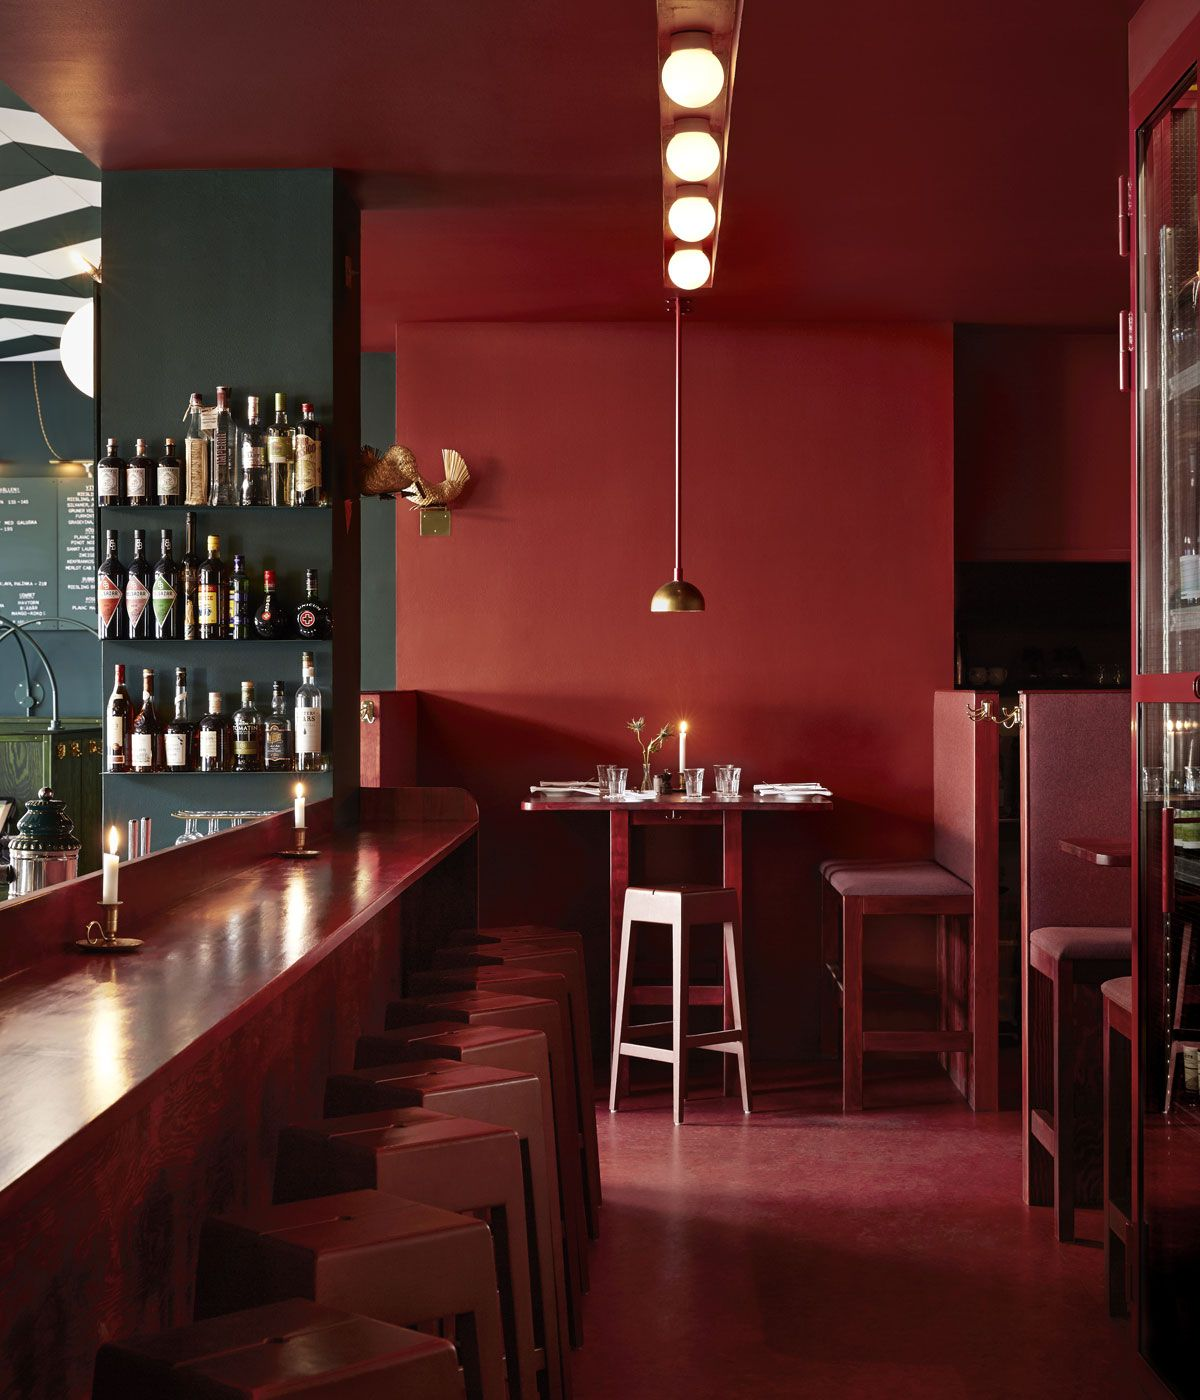 The Best 5 Bars And Restaurants In Stockholm As Recommended By Local Designers Bar Interior Design Red Interior Design Restaurant Interior